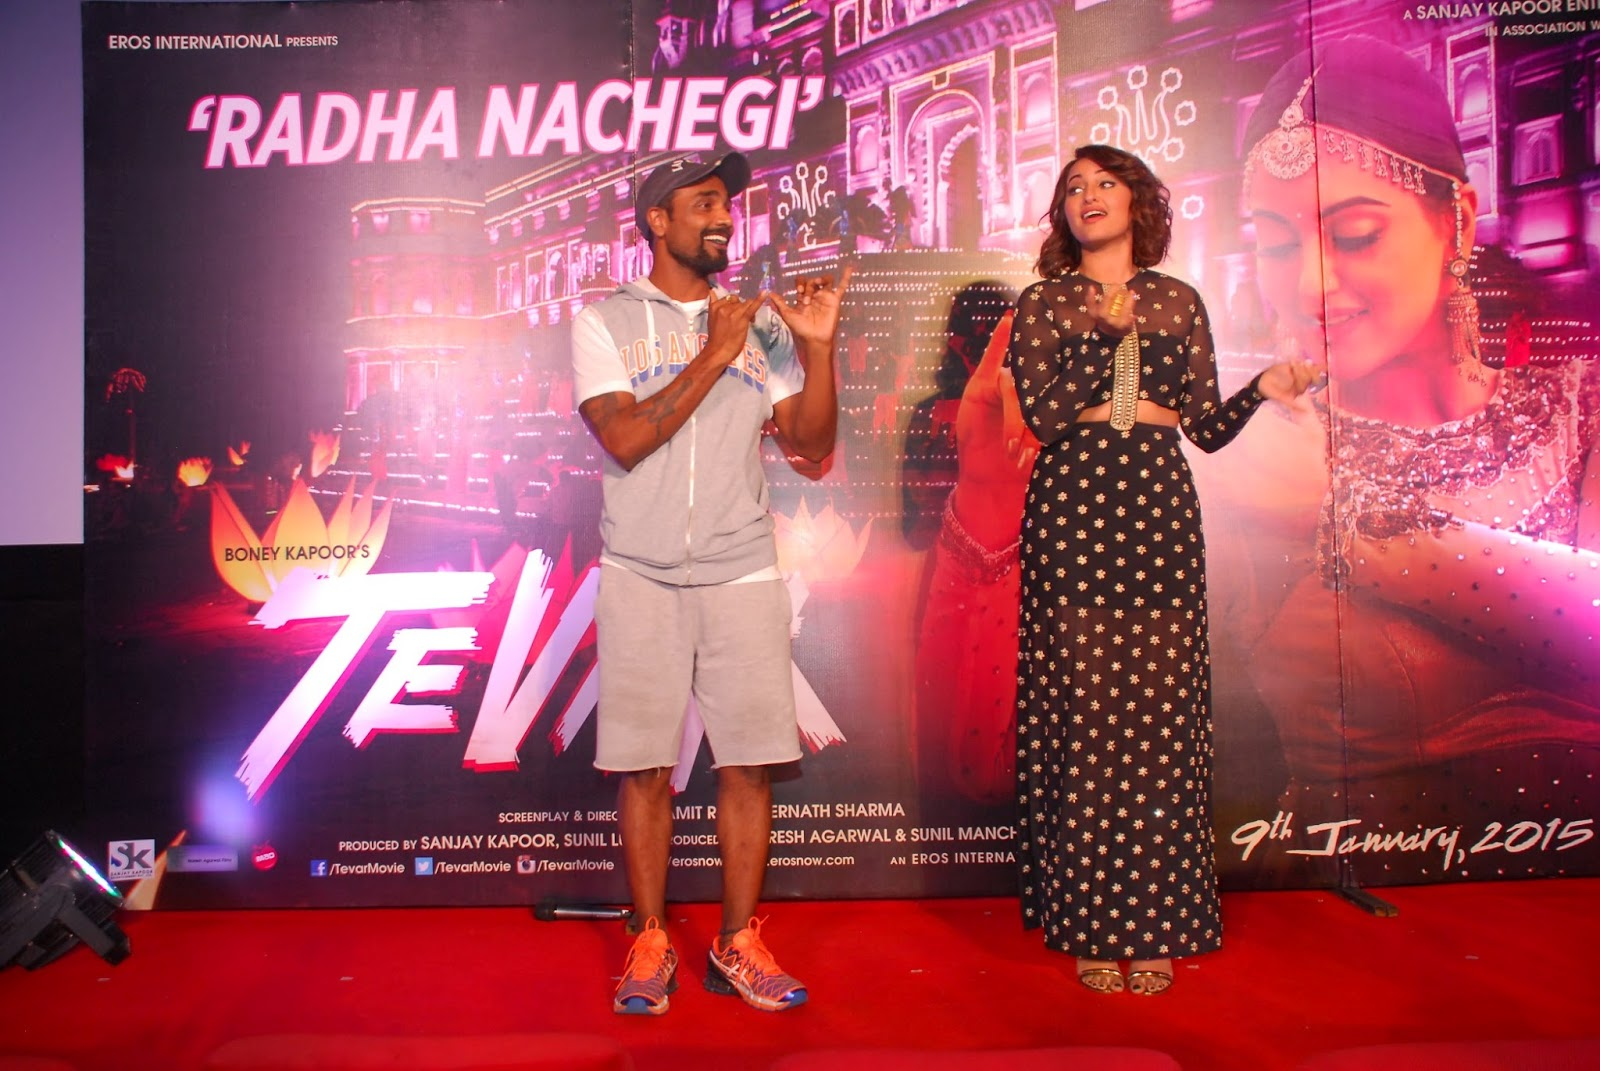 Unveil of 'Radha Nachegi' song from Tevar